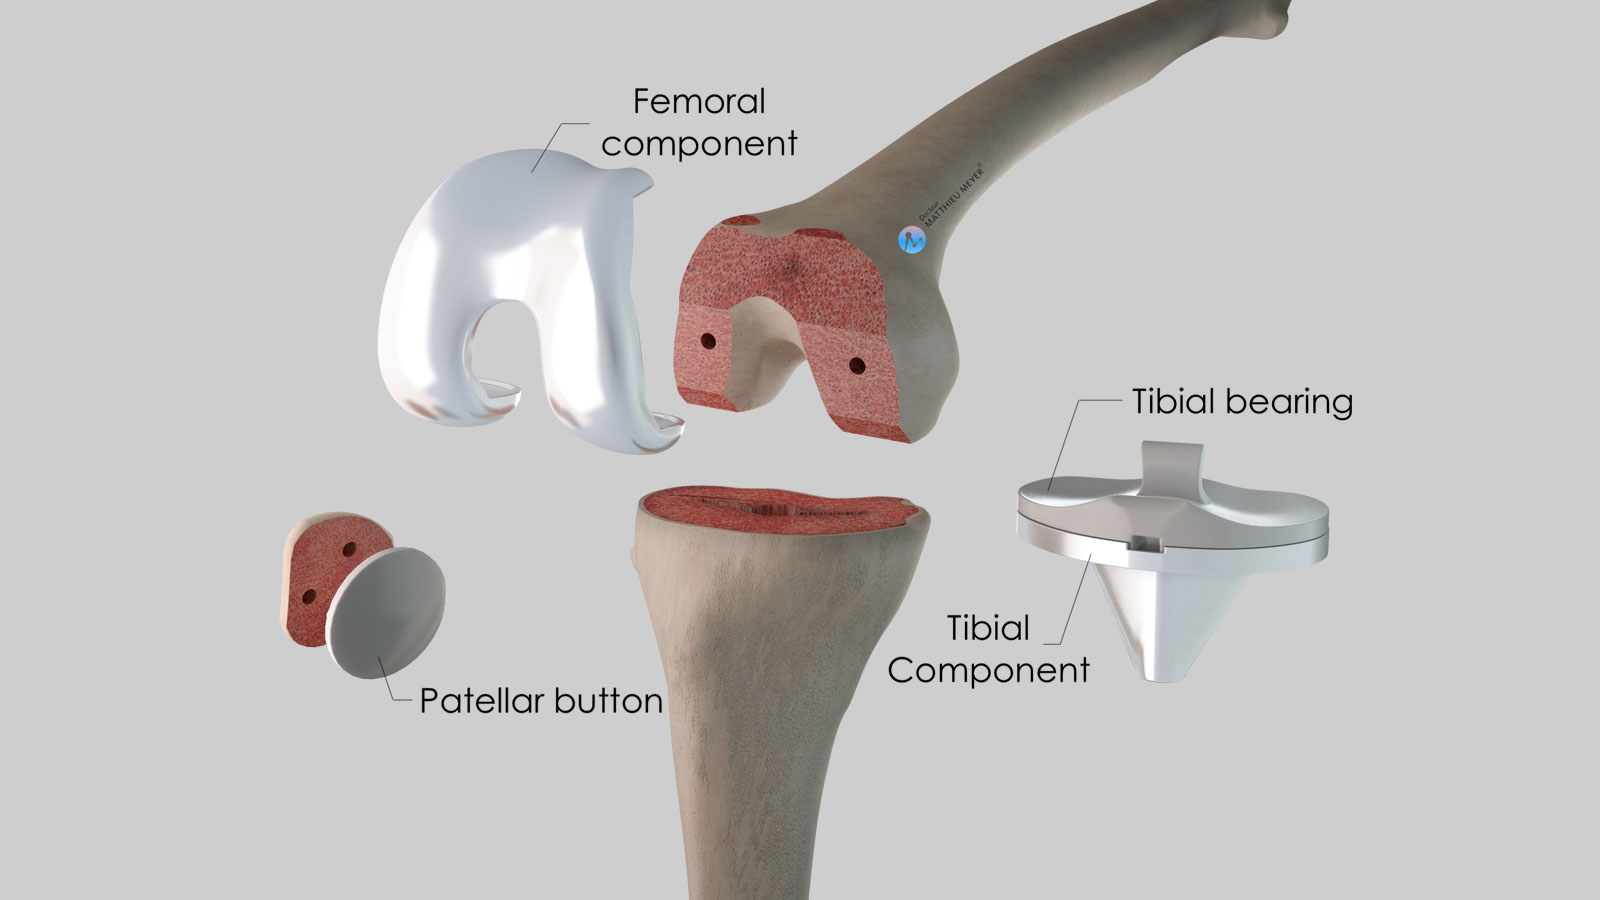 All the components of a knee replacement